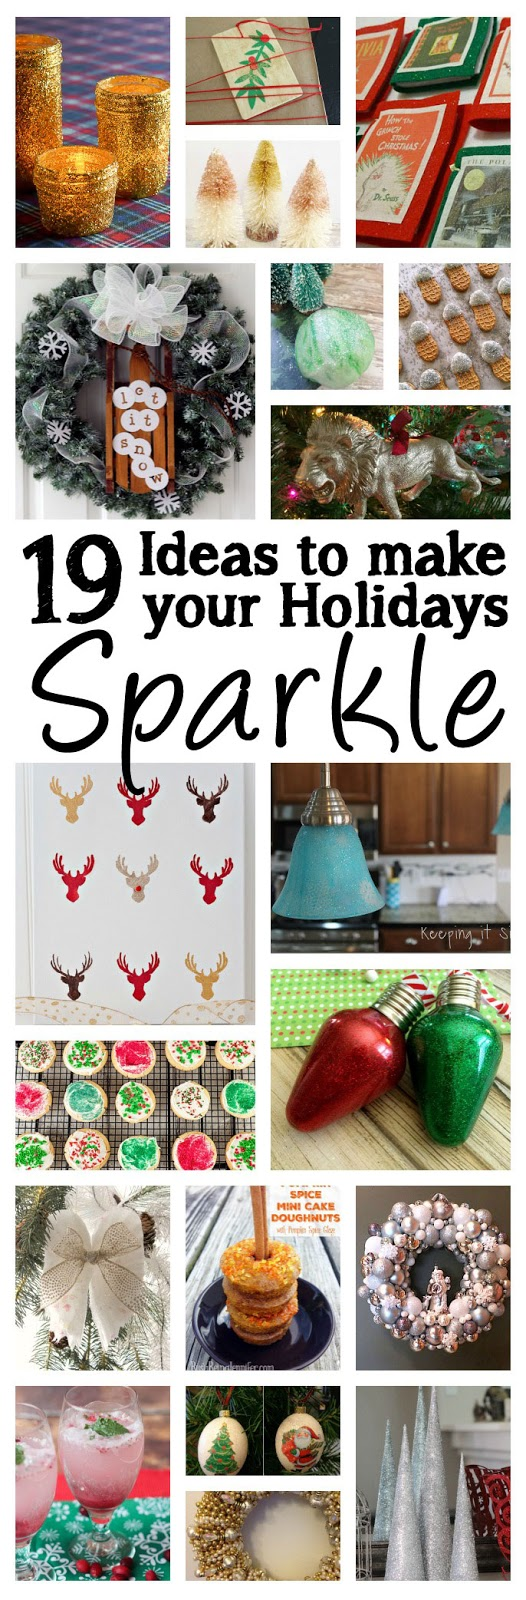 19 Sparkle Holiday Crafts